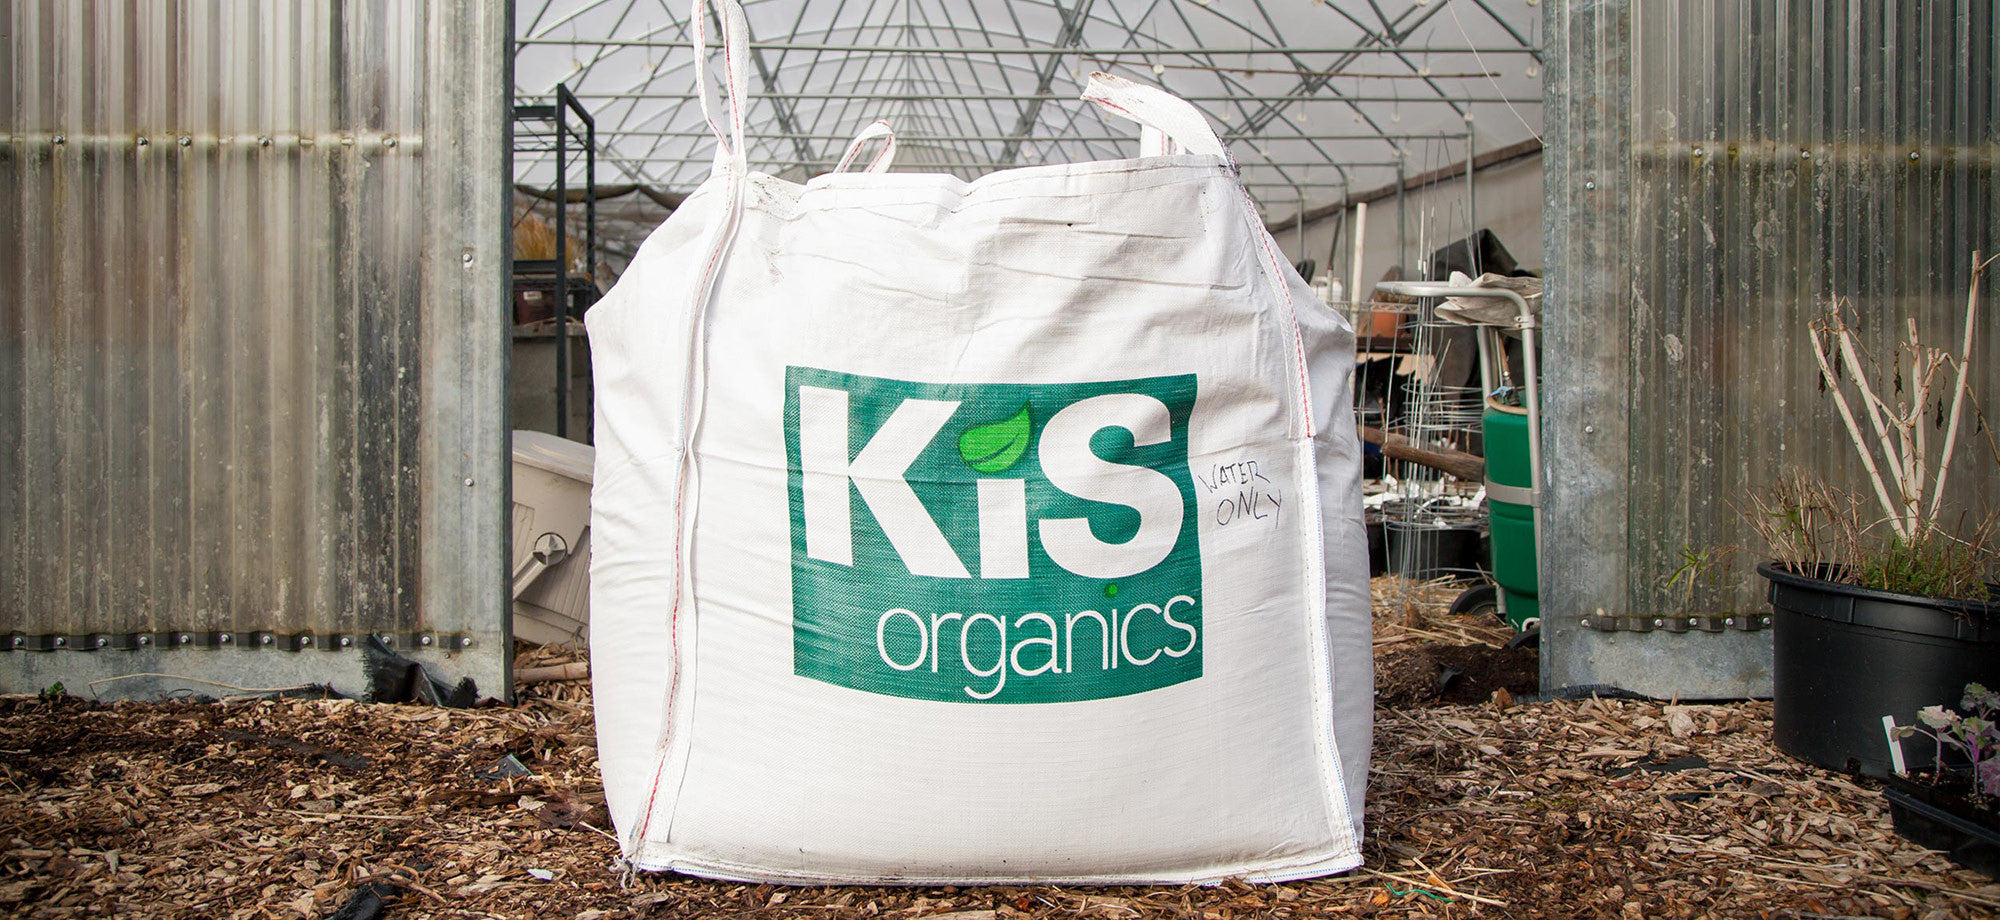 Bulk potting soil mix kis organics